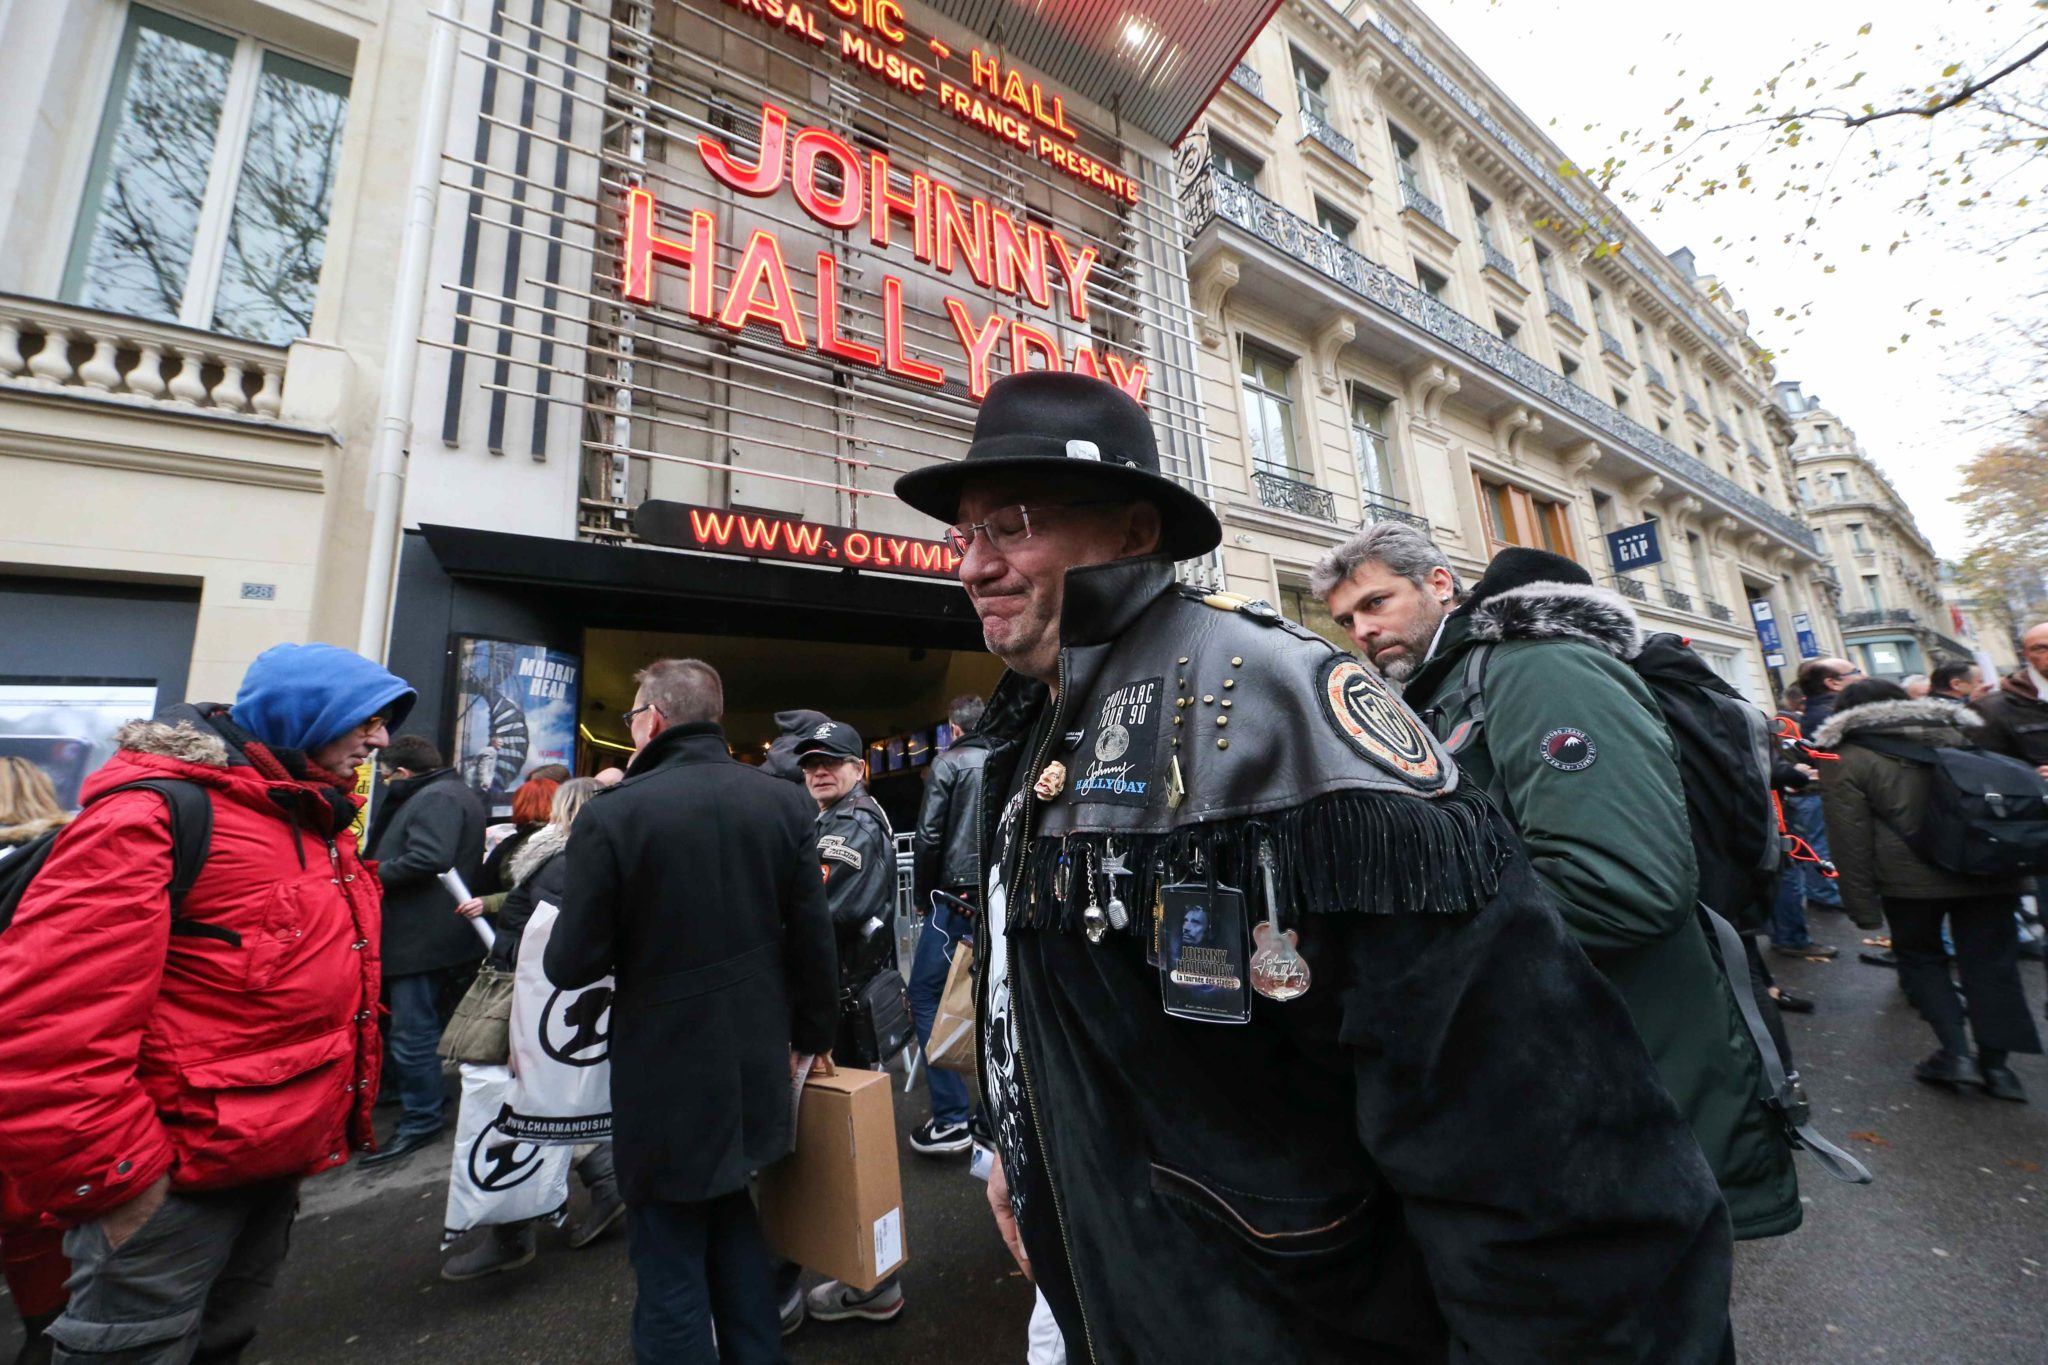 A fan of the French singer Johnny Hallyday poses in front of the  Olympia Hall in Paris where  a tribute was paid to this legend of French music on Sunday, December 1, 2019, almost two years after his death. For the occasion, the letters of his name shone